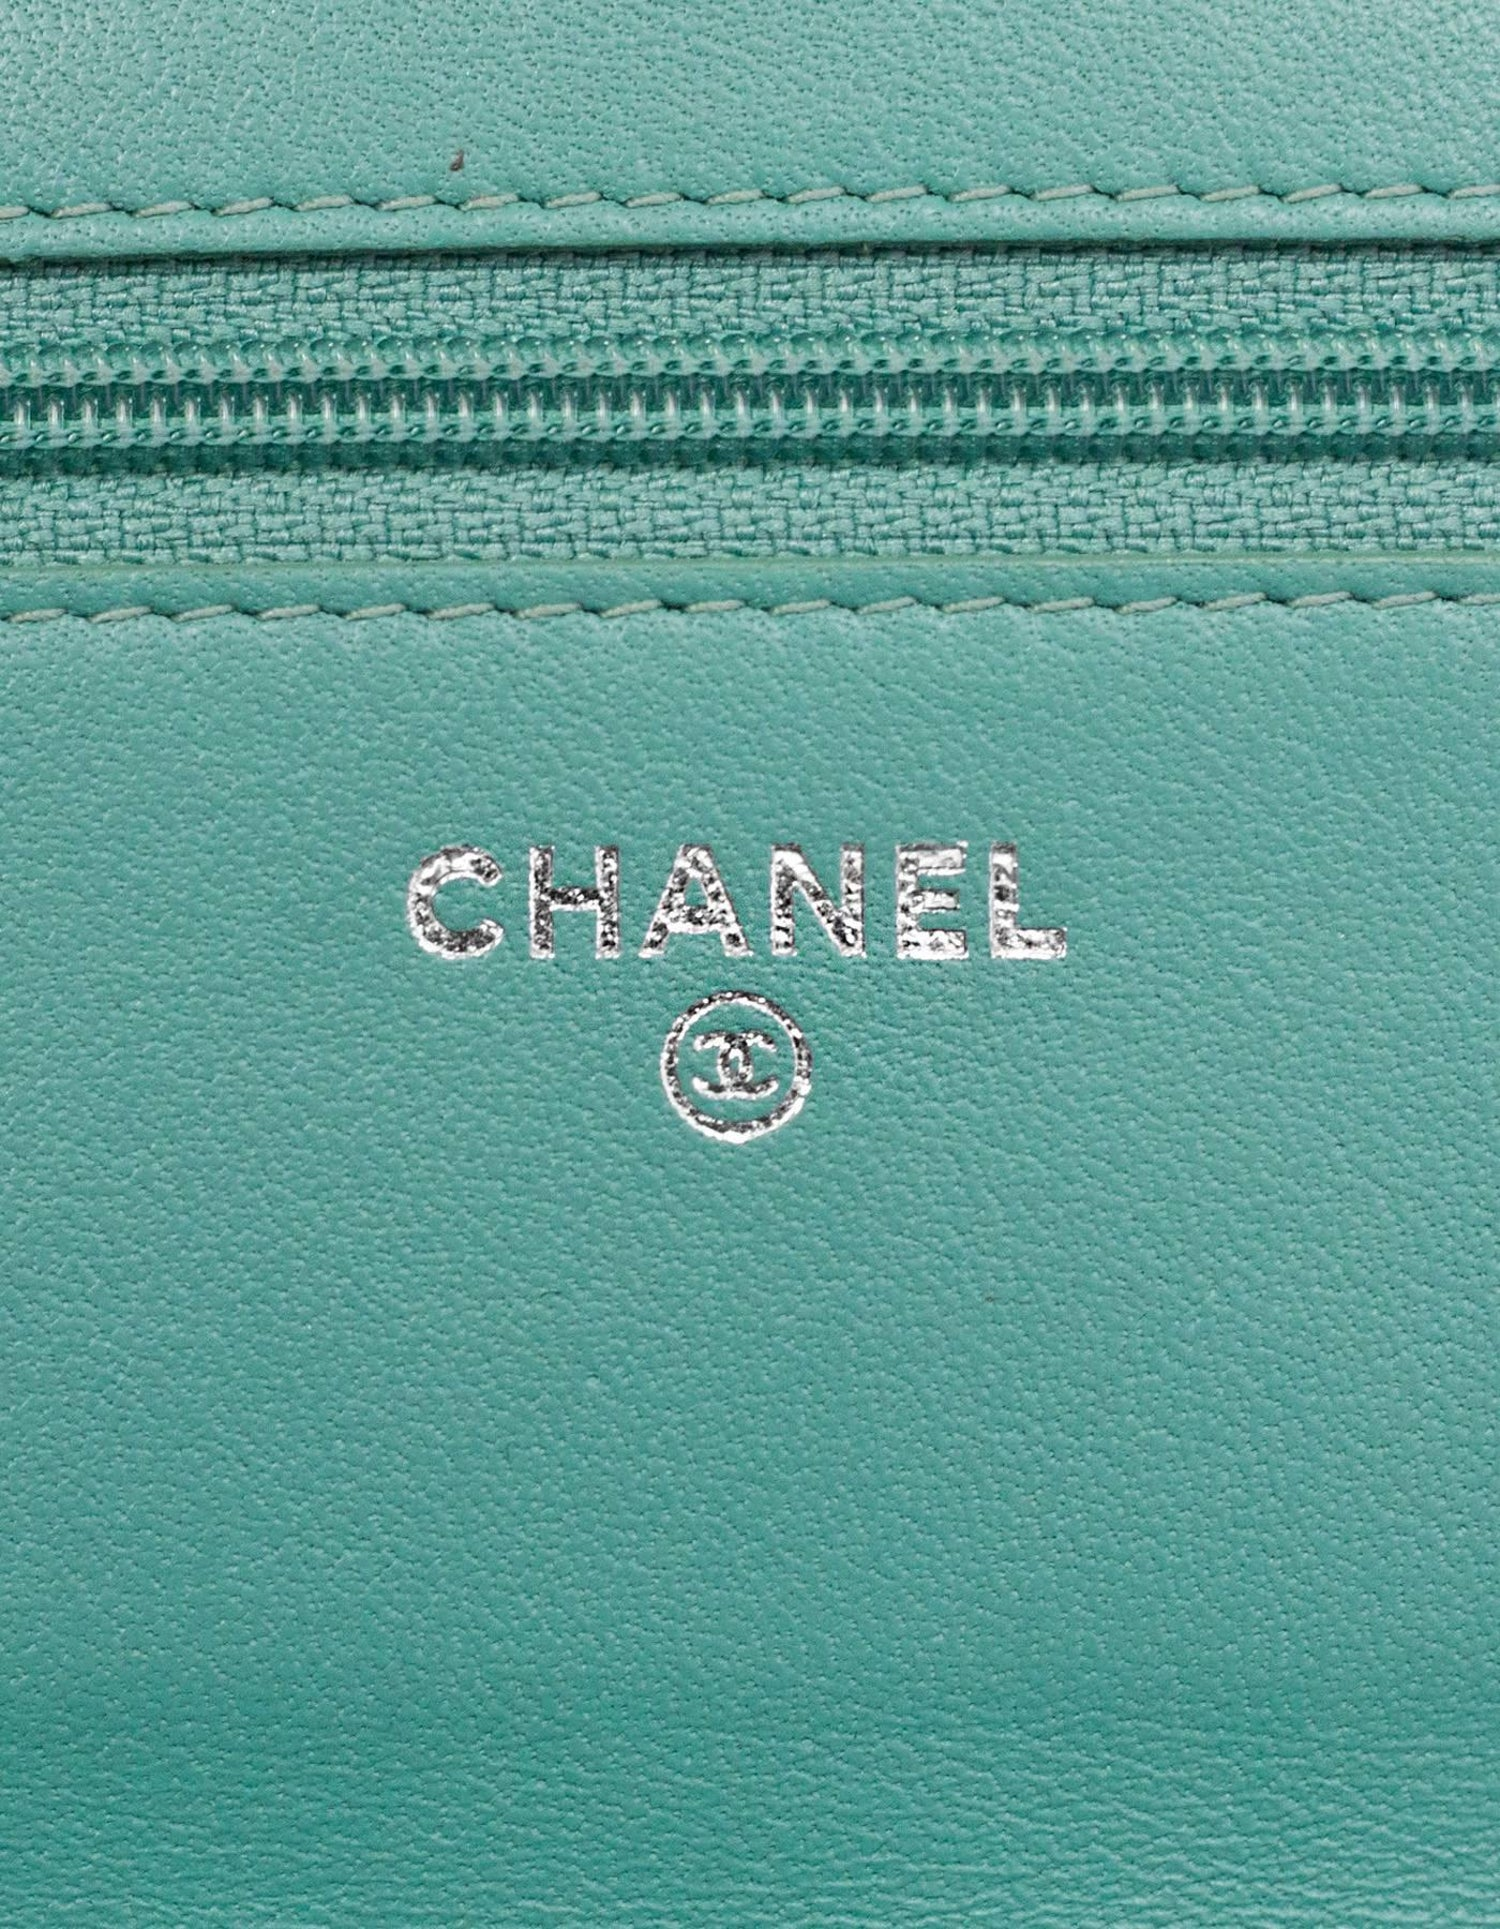 8f6cbfdc6f10 Chanel Seafoam Green Patent Leather WOC Wallet on a Chain Crossbody Bag For  Sale at 1stdibs